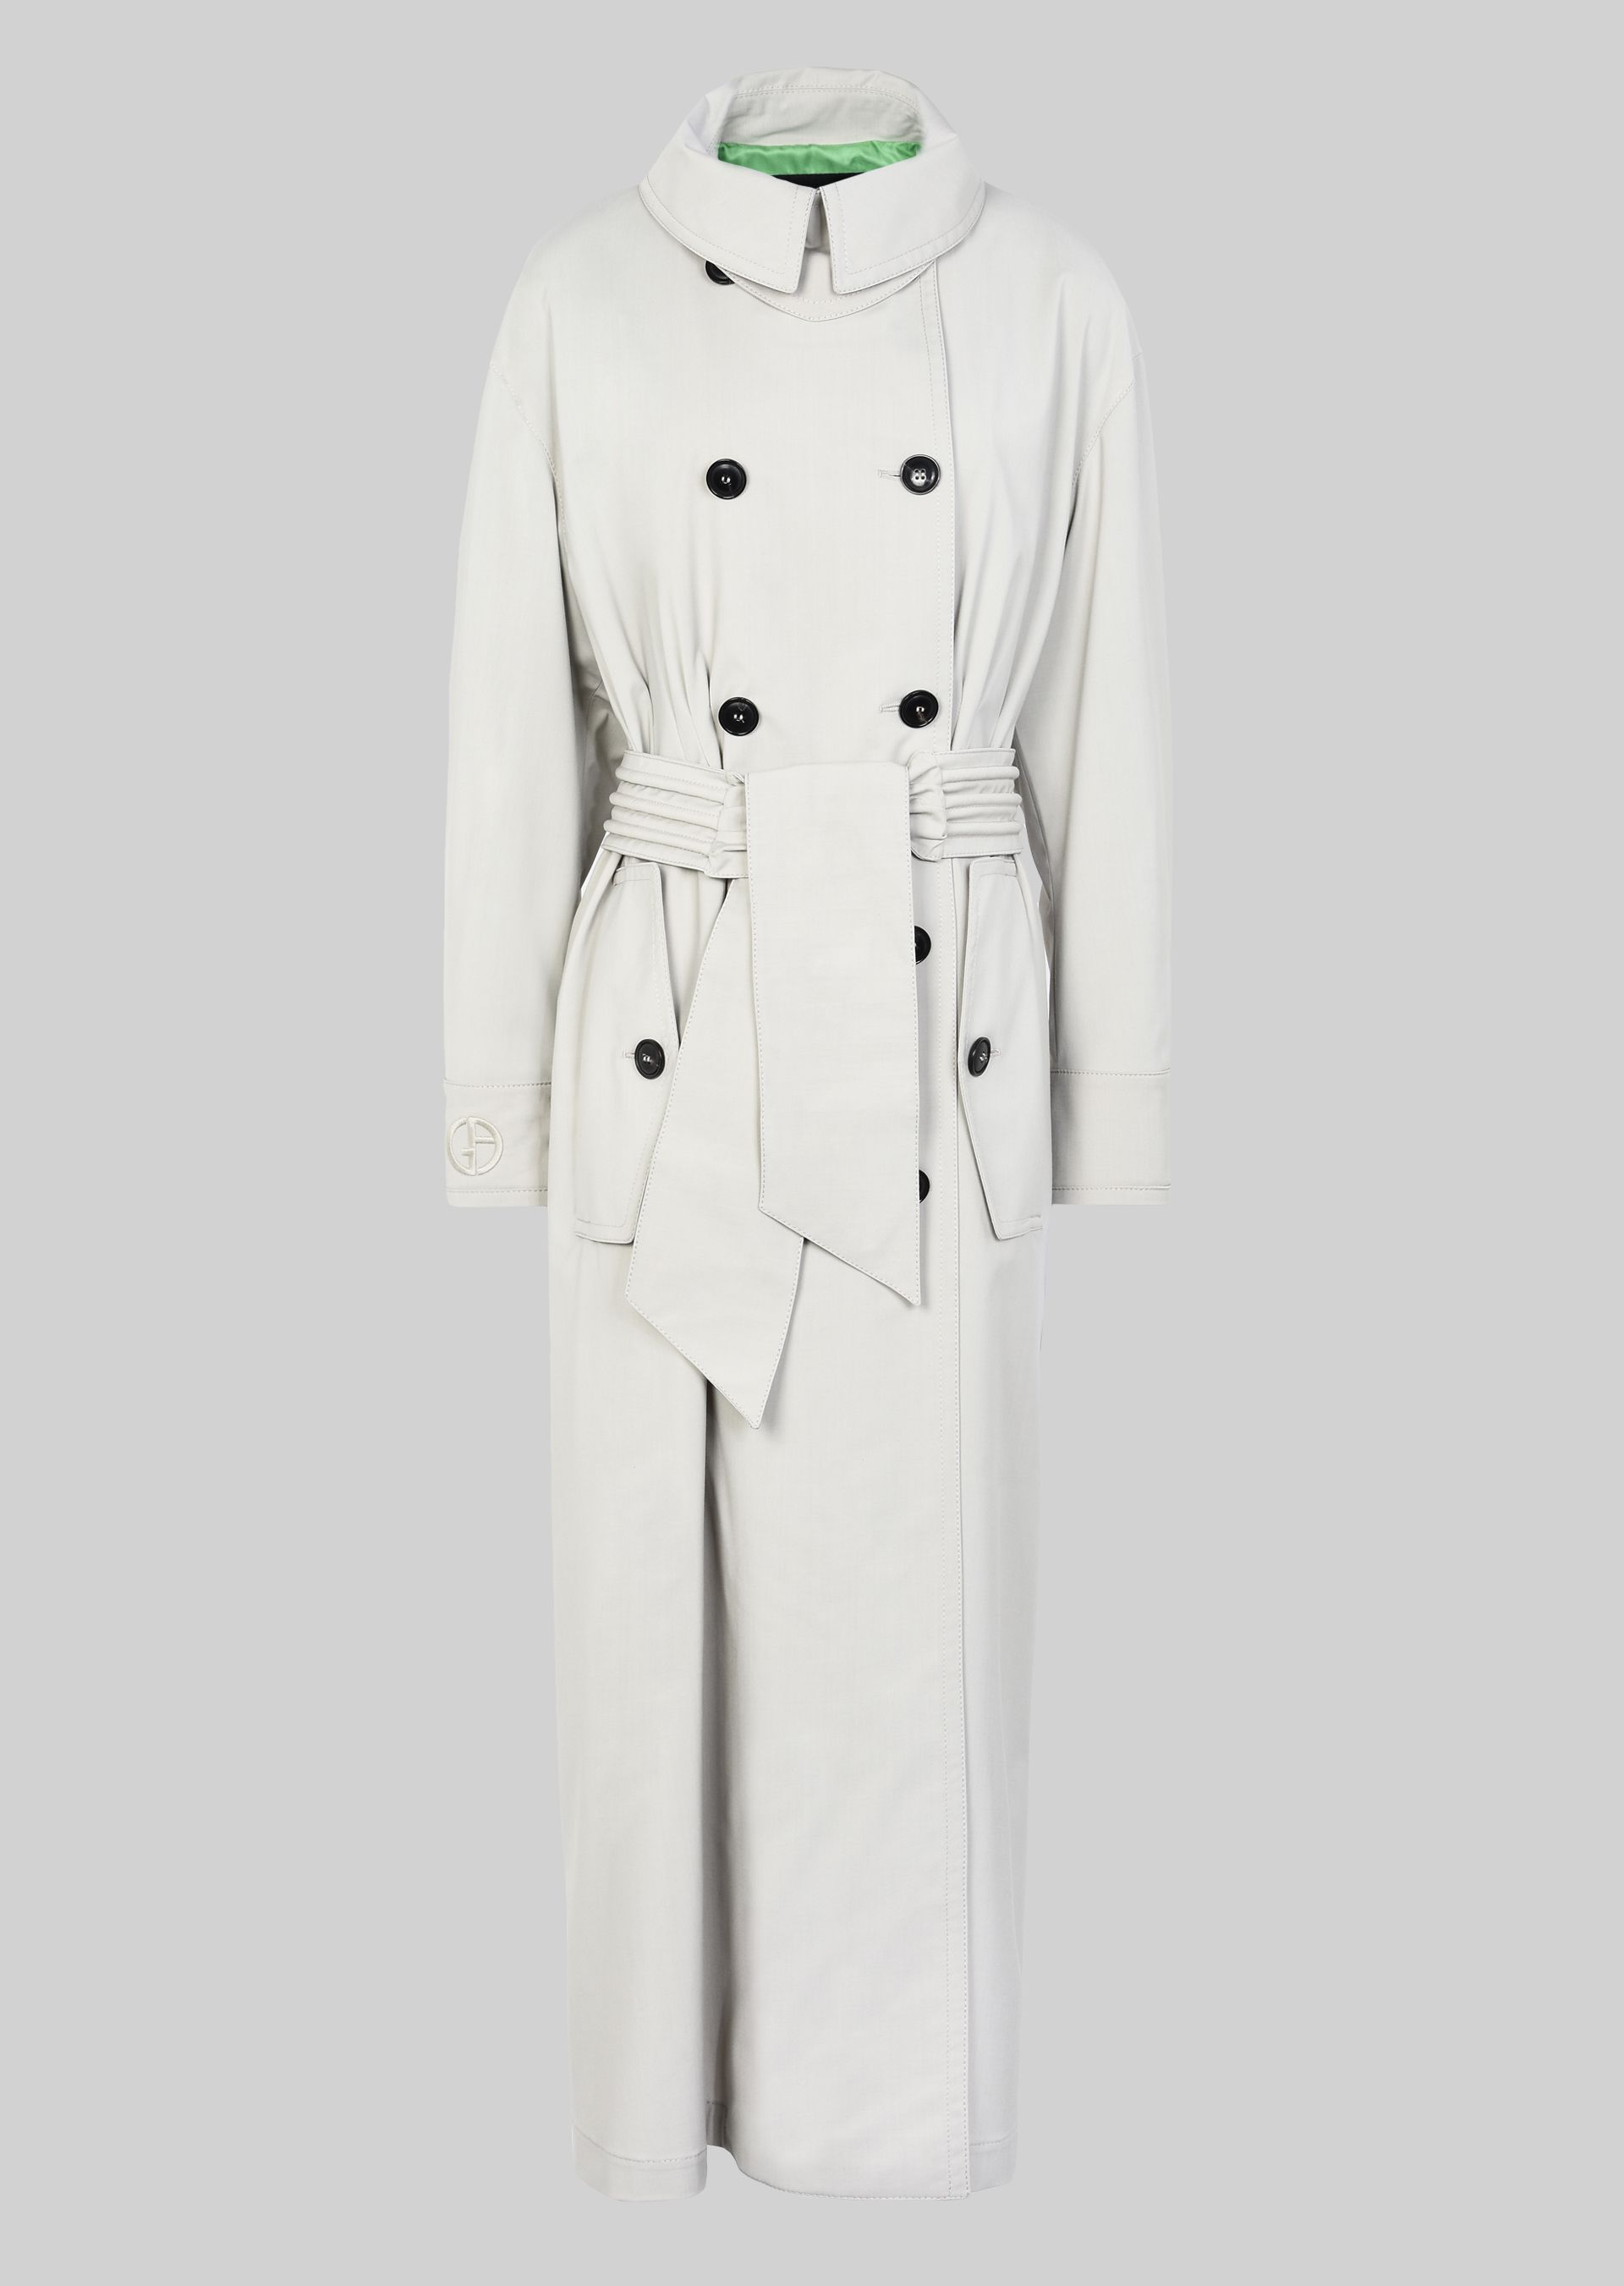 GIORGIO ARMANI DOUBLE-BREASTED TRENCH COAT IN WOOL CLOTH Classic Coat D r